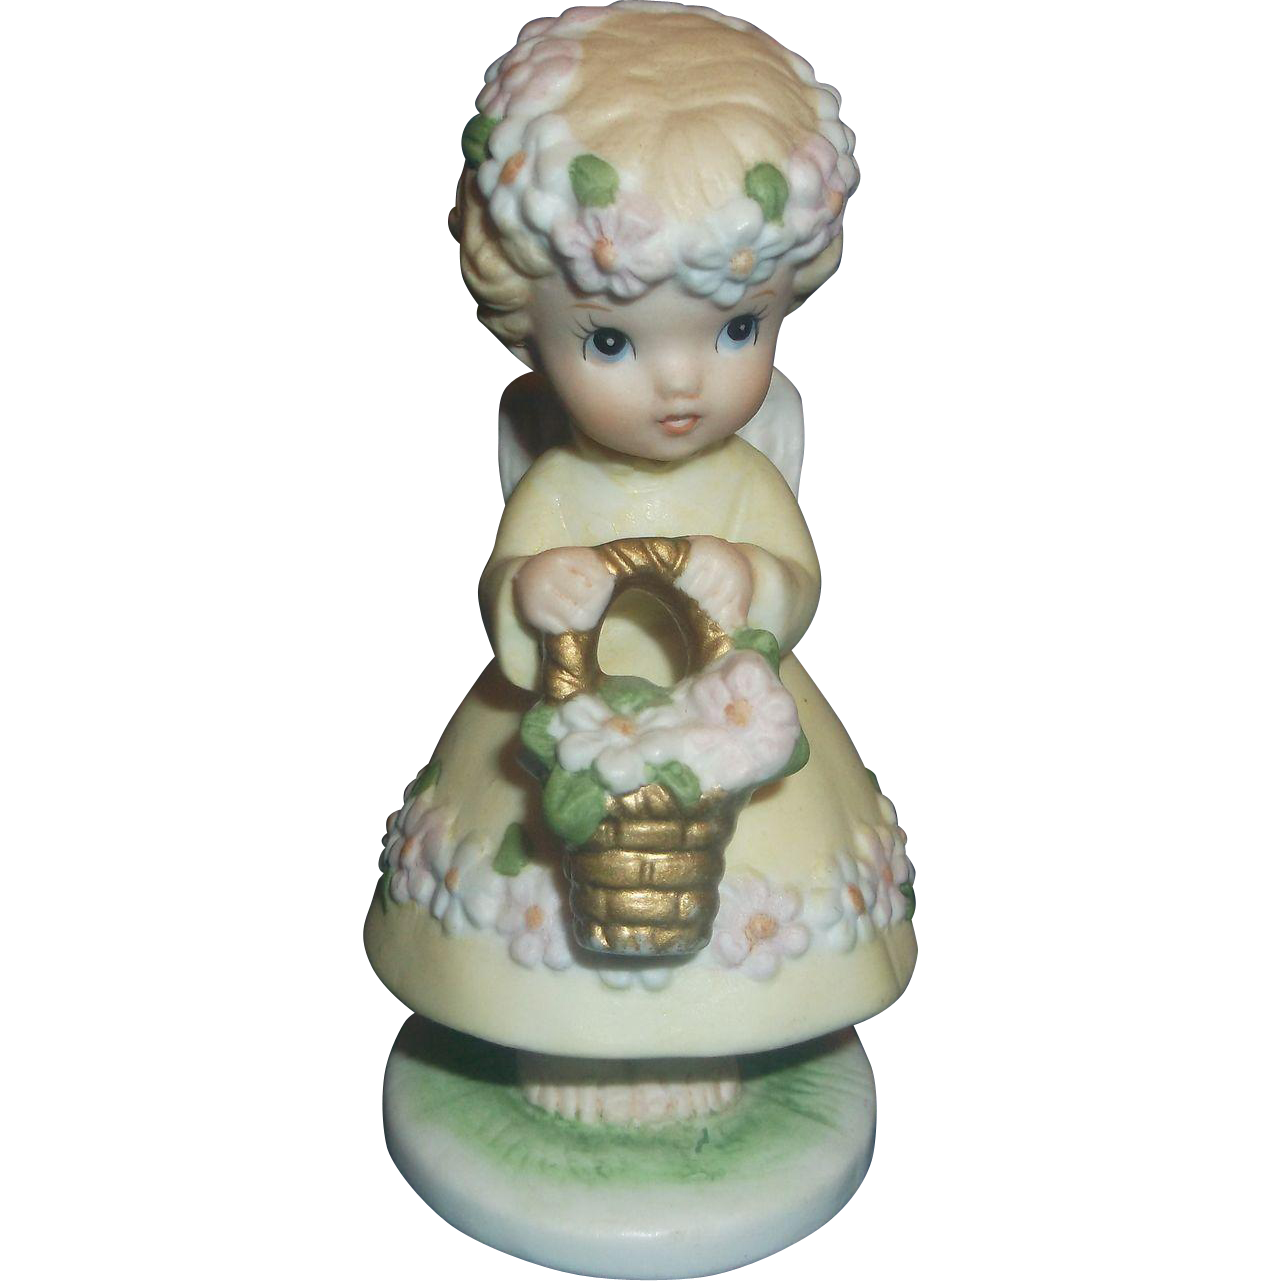 Eve Rockwell Hand Painted Angel Flower Girl Porcelain Figurine George Good Corp